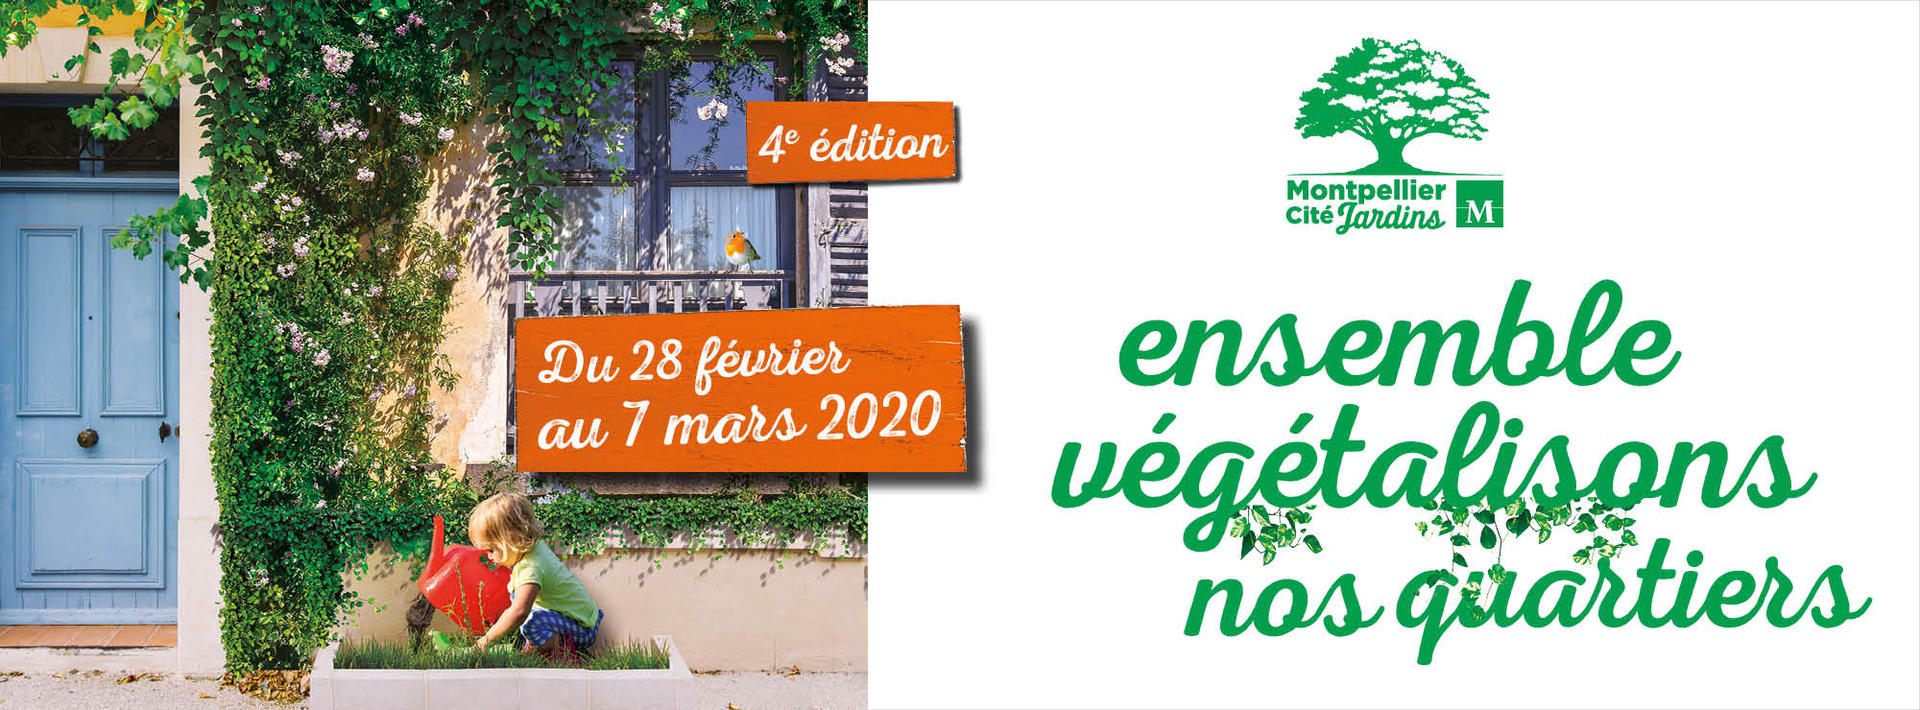 915 BANNER ENSEMBLE VEGETALISONS 2000x740 02 20 PP